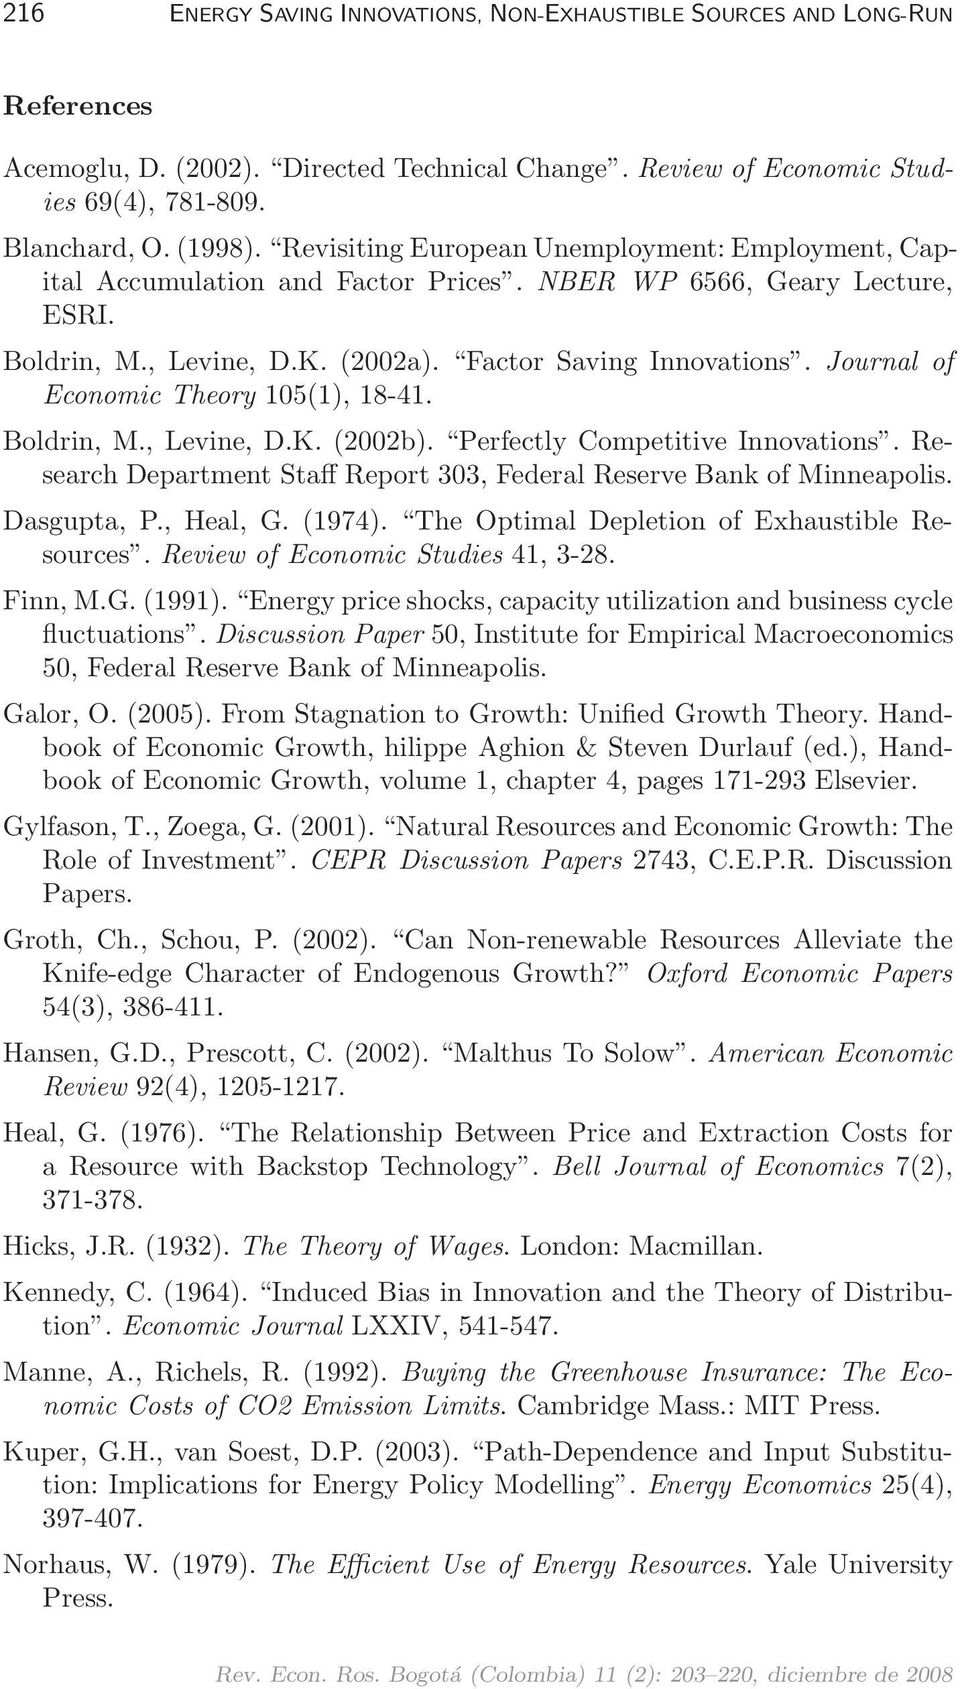 Journal of Economic Theory 1051), 18-41. Boldrin, M., Levine, D.K. 2002b). Perfectly Competitive Innovations. Research Department Staff Report 303, Federal Reserve Bank of Minneapolis. Dasgupta, P.